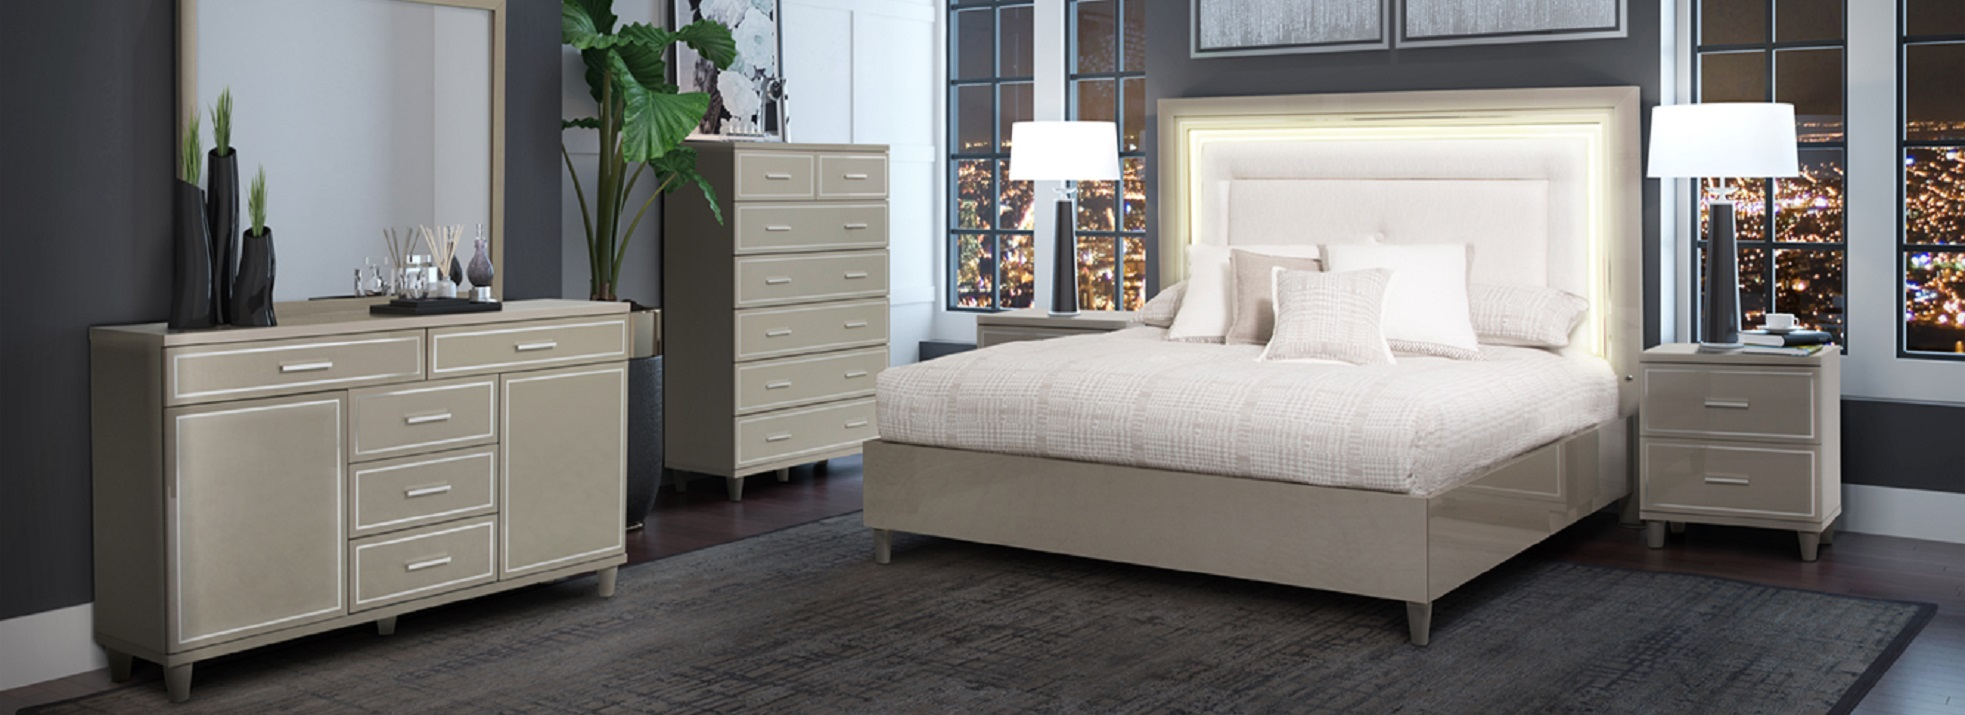 4 Piece Aico Urban Place Upholstered Bedroom Set